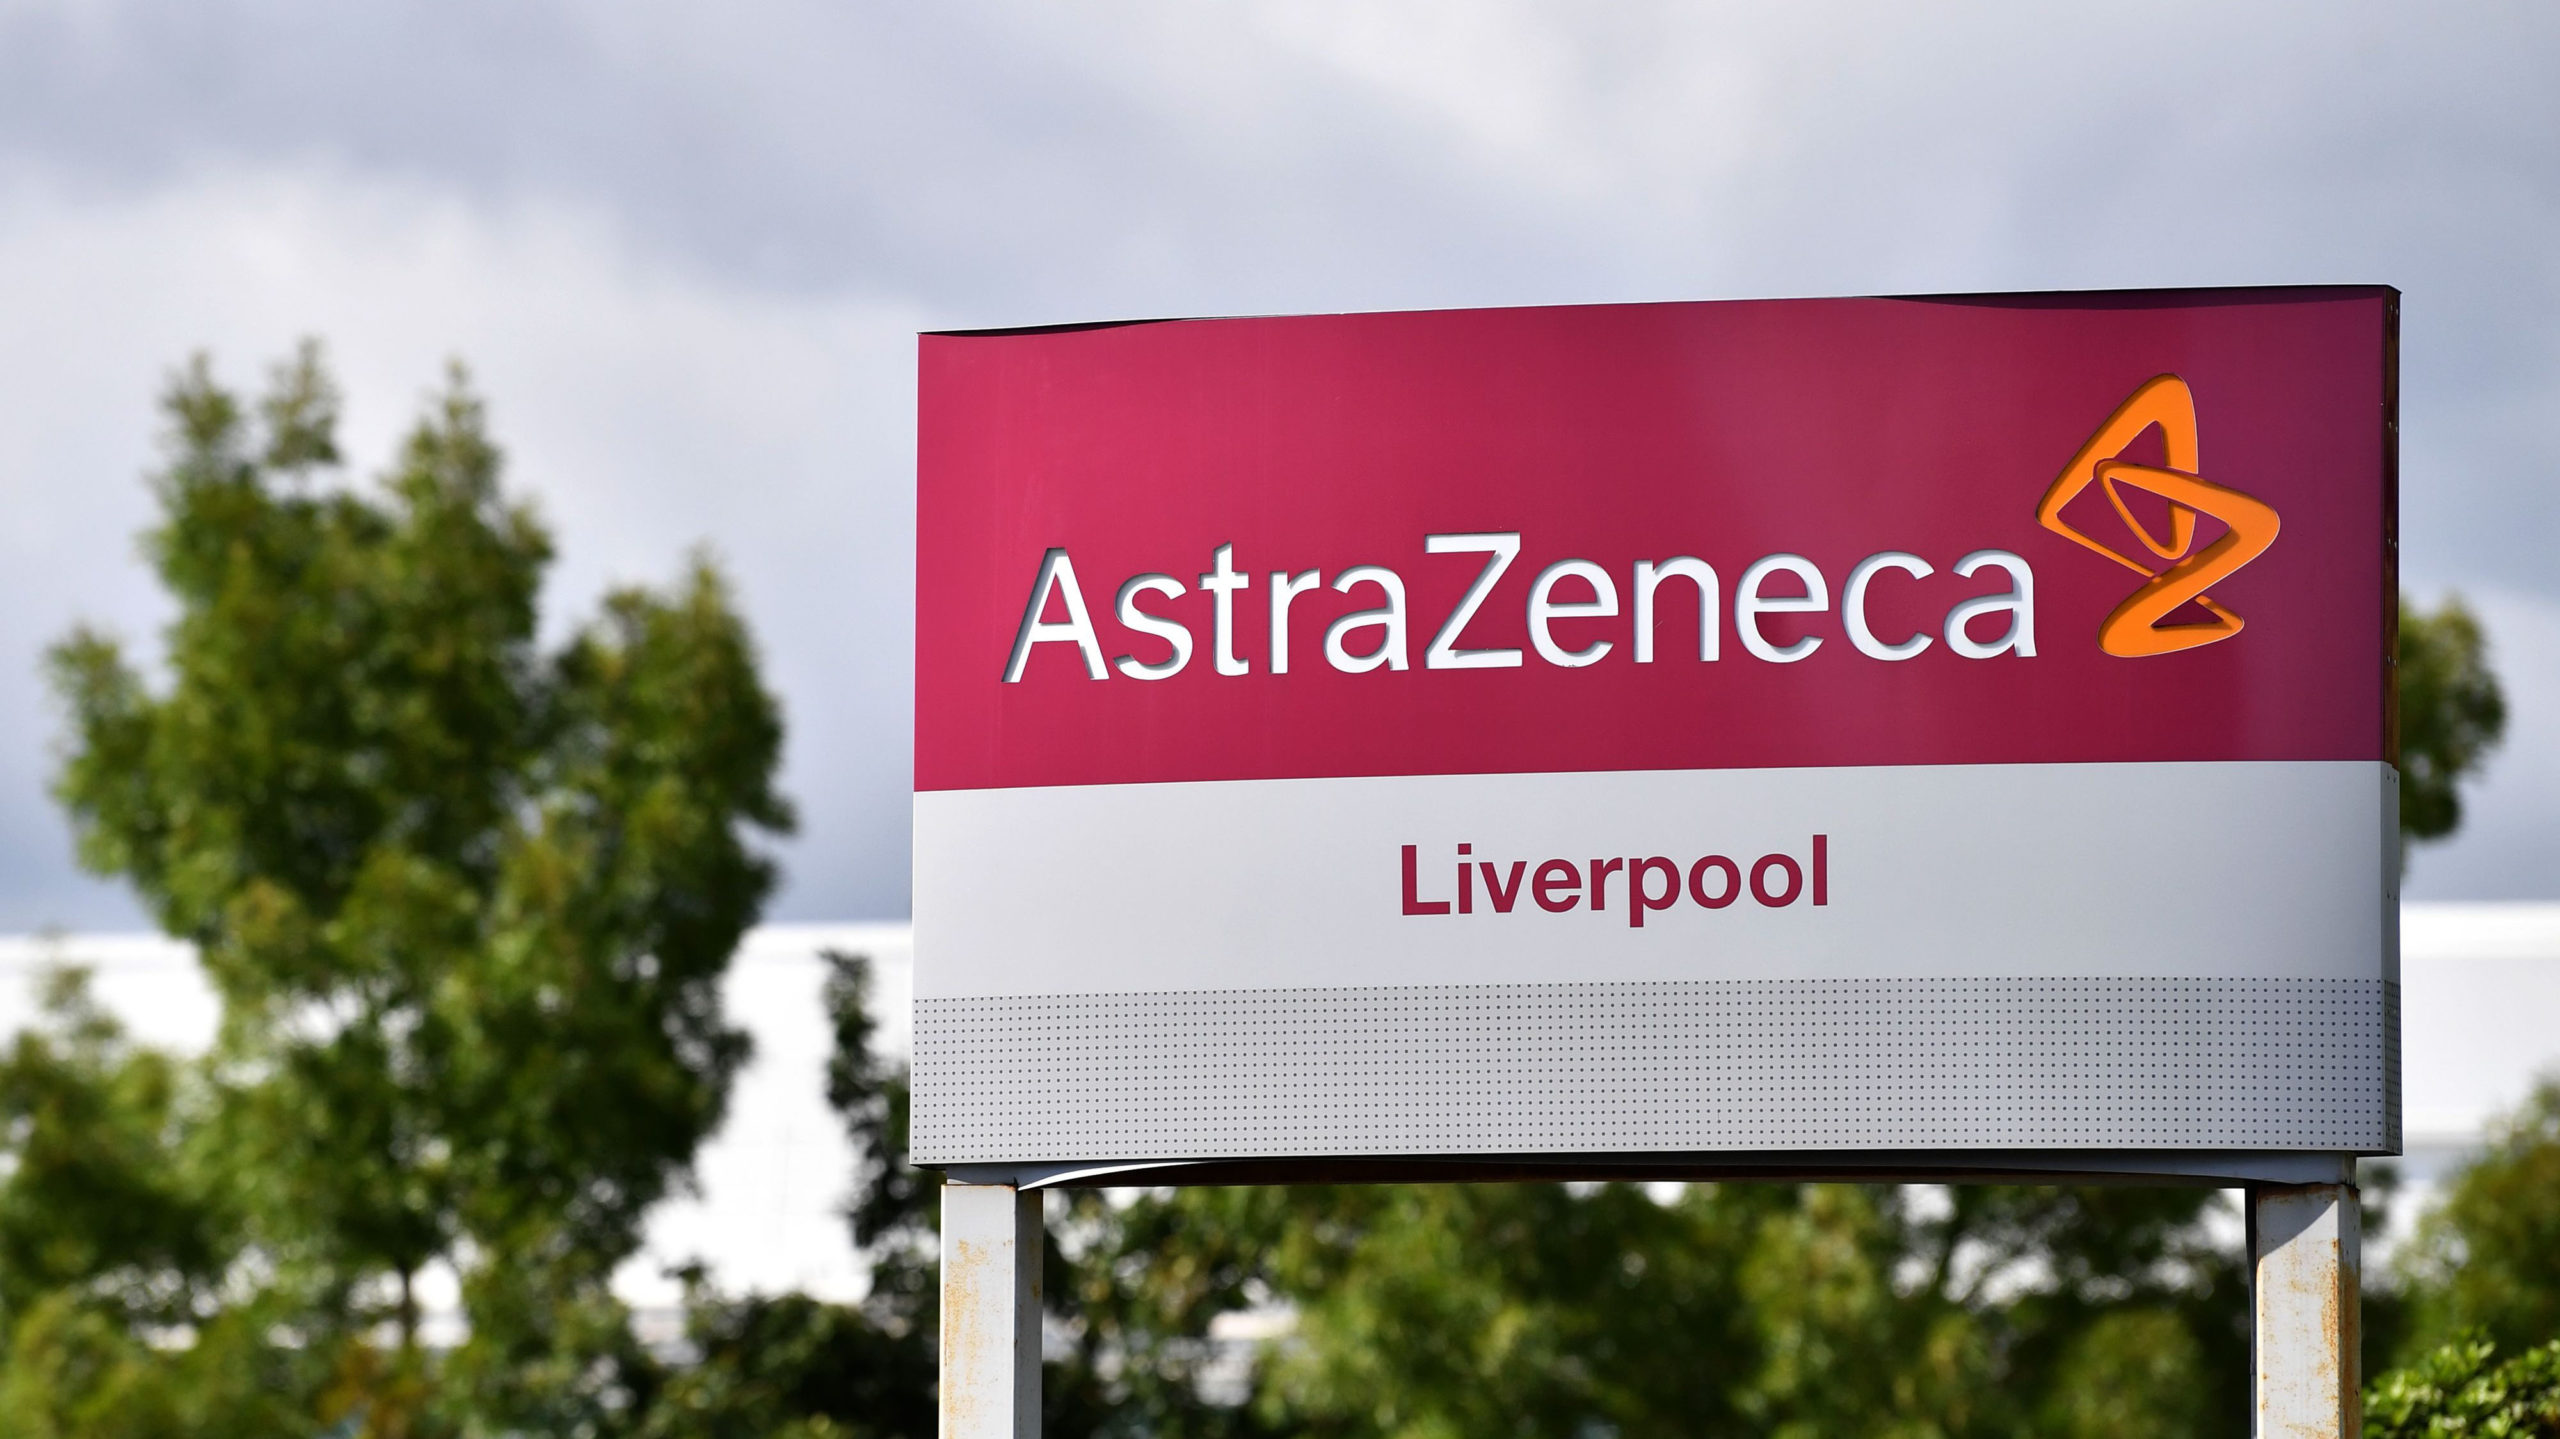 AstraZeneca, 3rd major Vaccine is highly effective and cheaper.